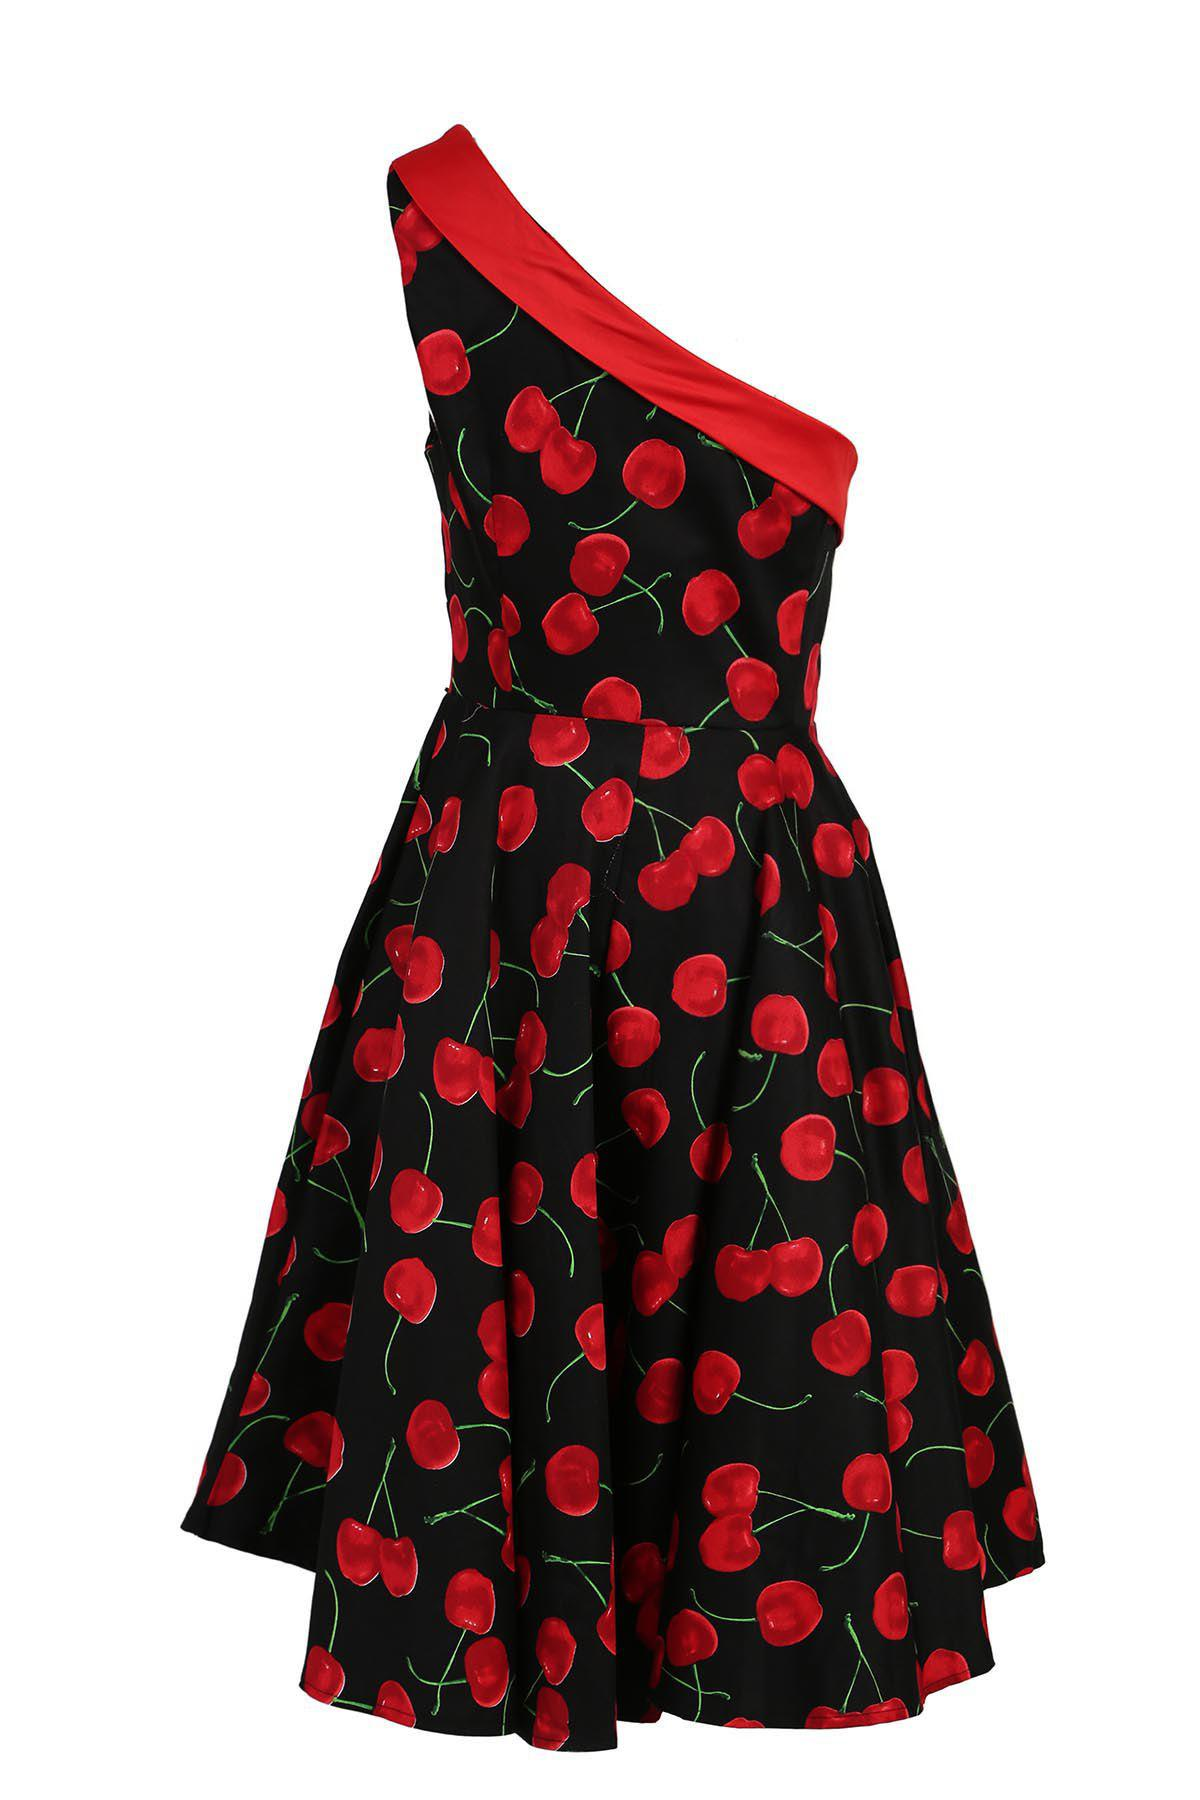 New Vintage One-Shoulder Sleeveless Cherry Printed Flare Dress For Women